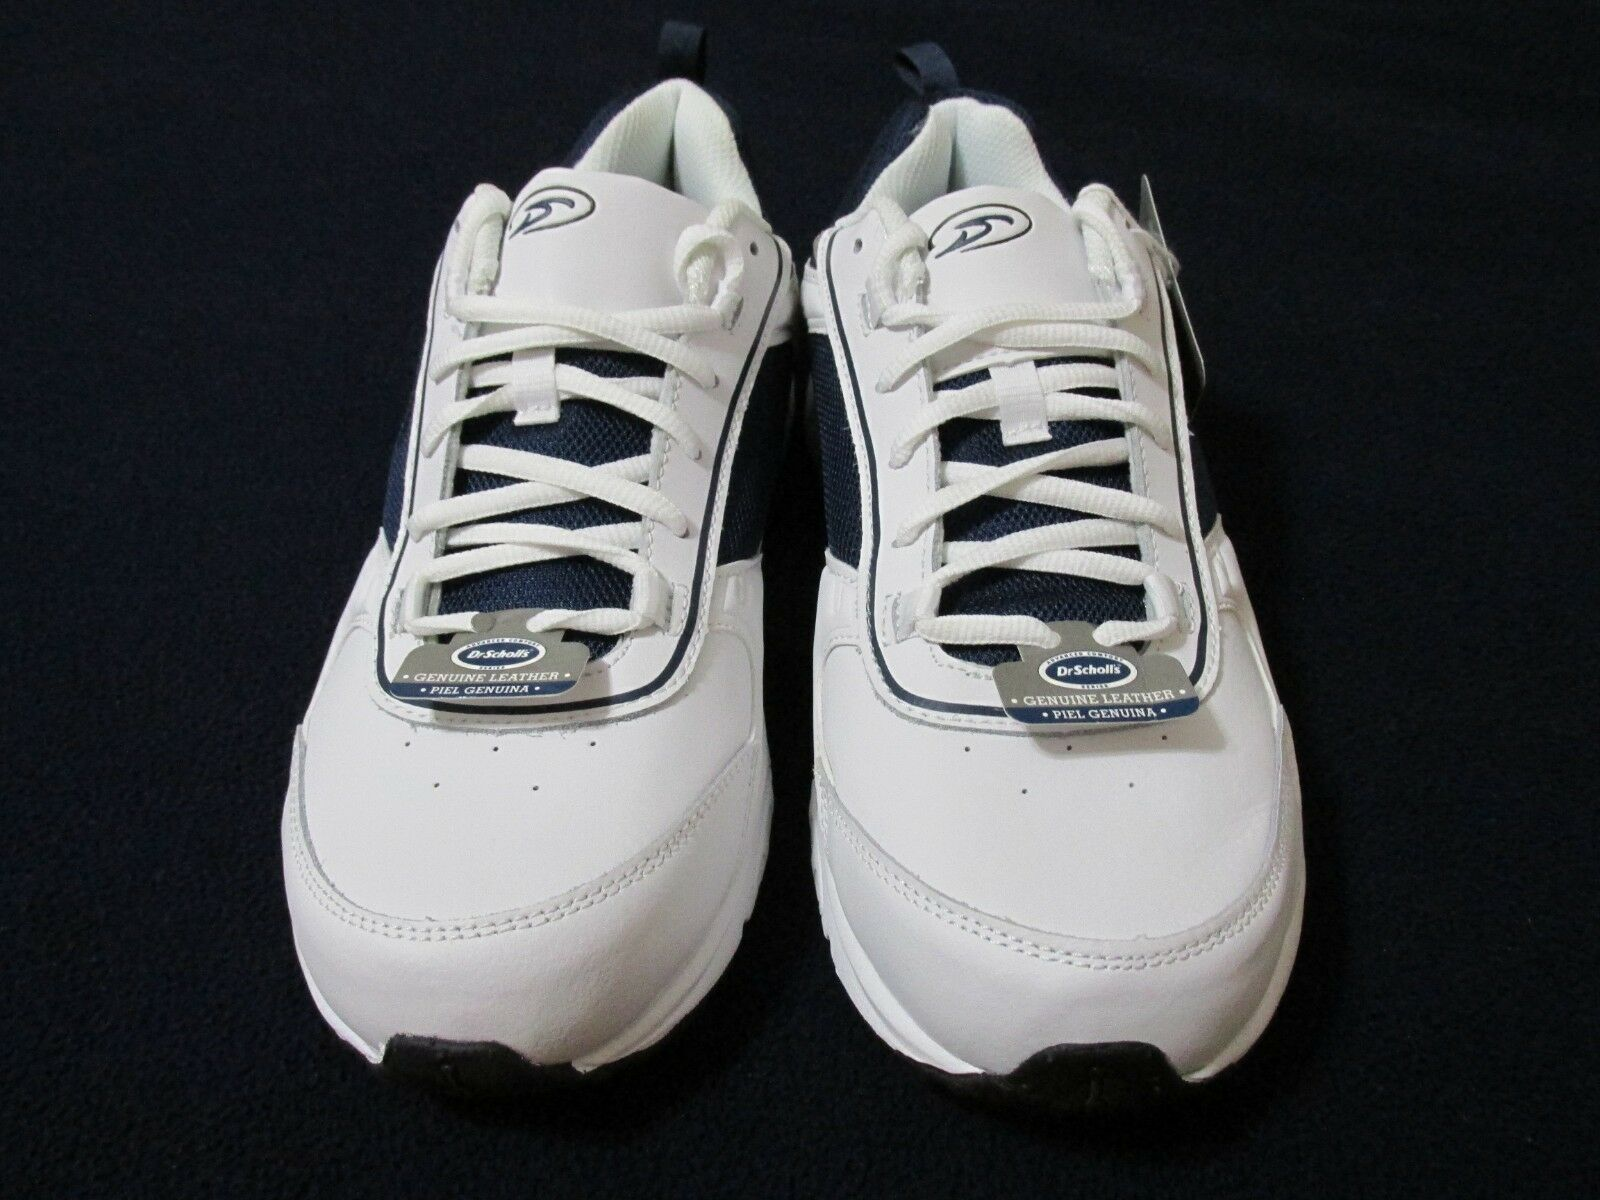 Brand New without Box, Dr. Scholl's Rambler Men's WW (Wide-Width) Athletic shoes